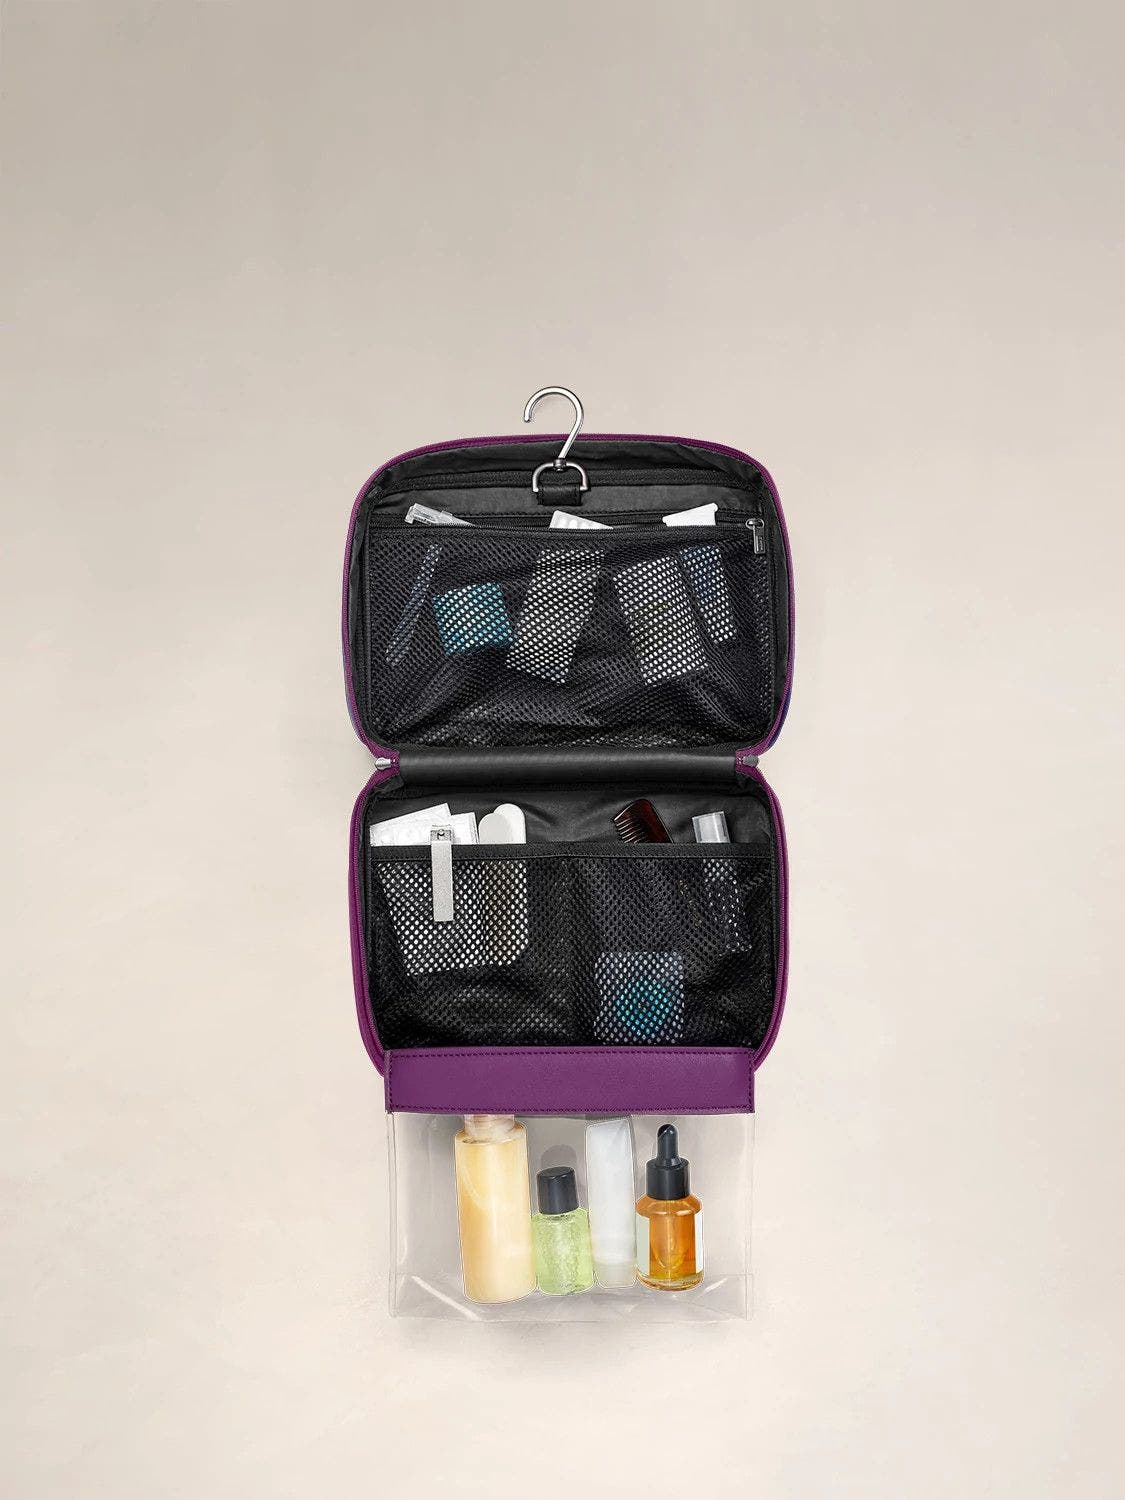 An internal view of a geometric print toiletry bag packed with travel accessories within mesh pockets.